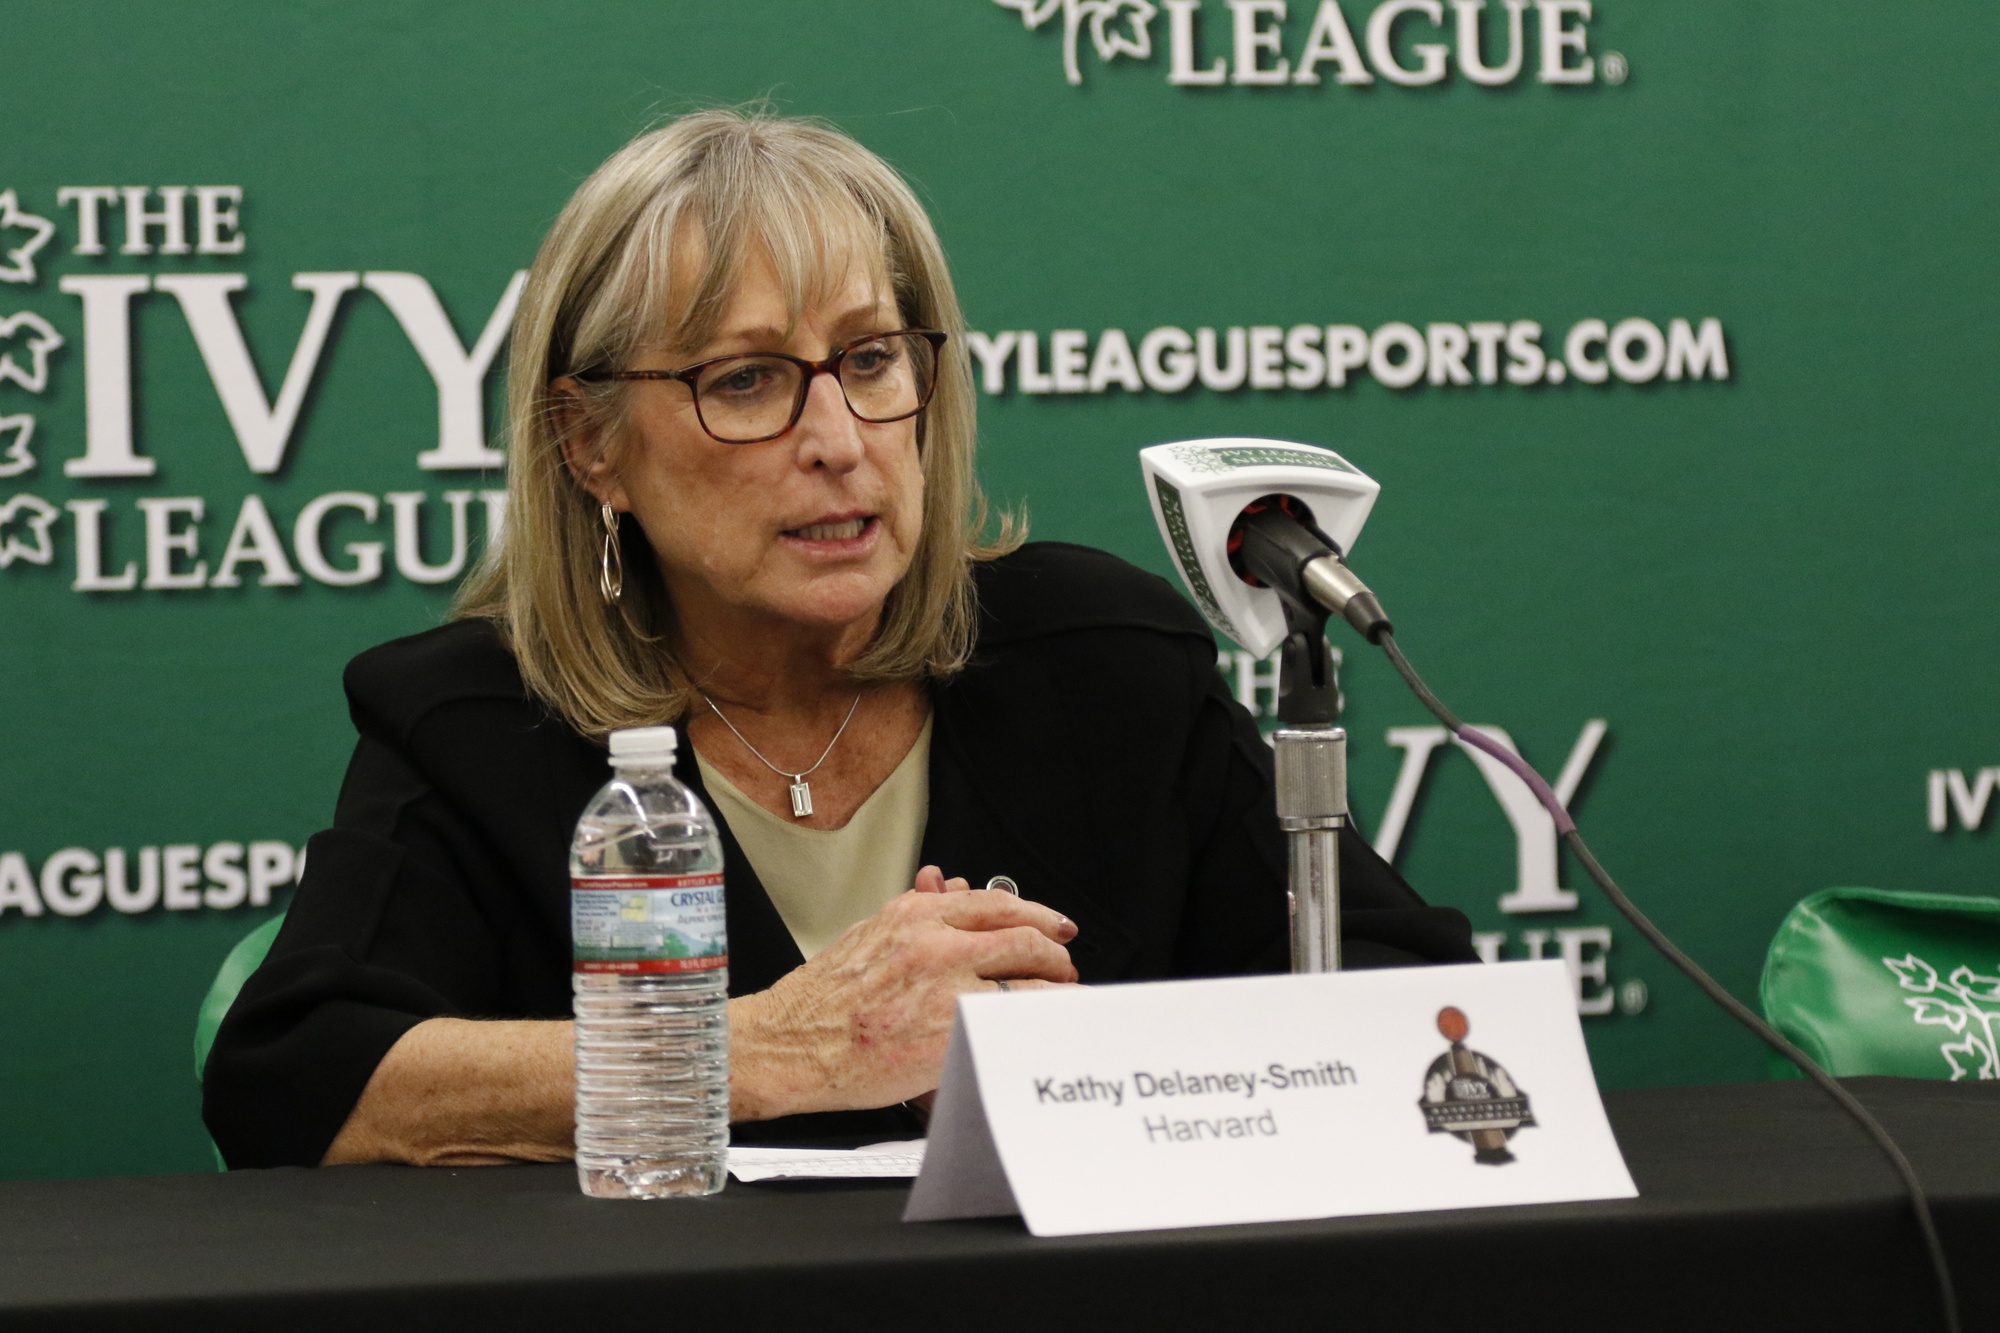 The 2018-19 season will be head coach Kathy Delaney-Smith's 37th year at the helm.